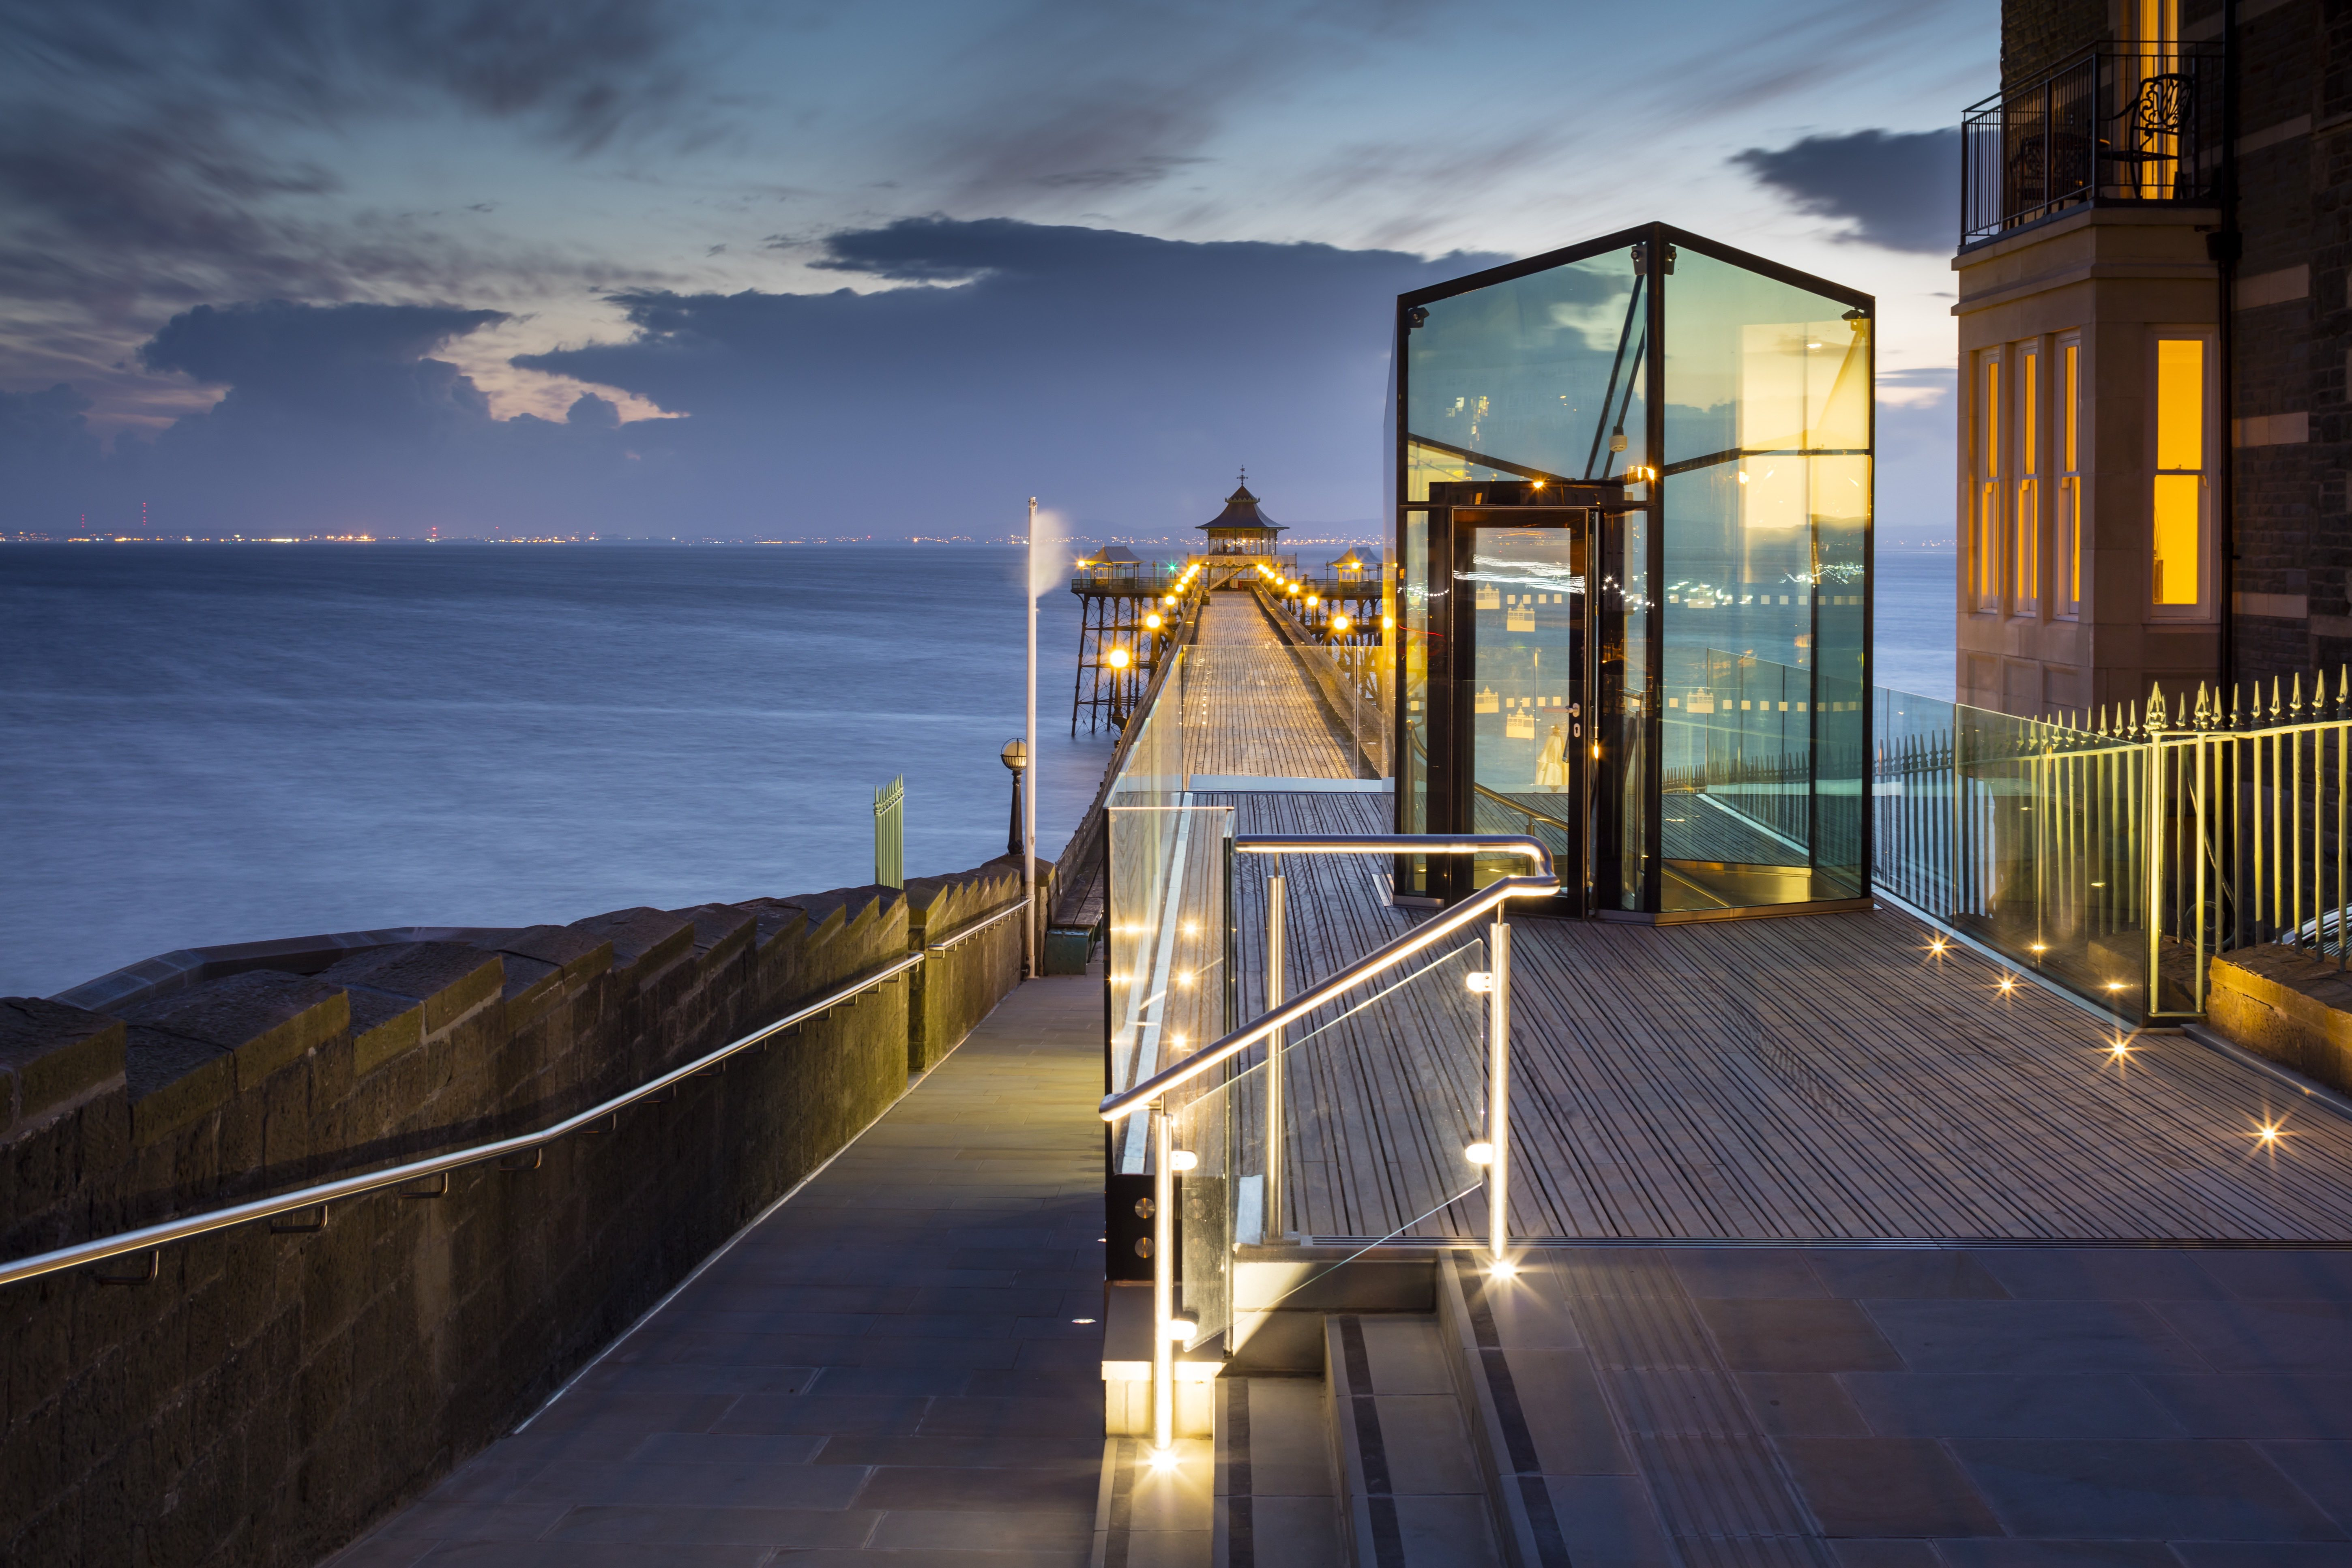 Clevedon Pier shortlisted for RICS Awards 2017